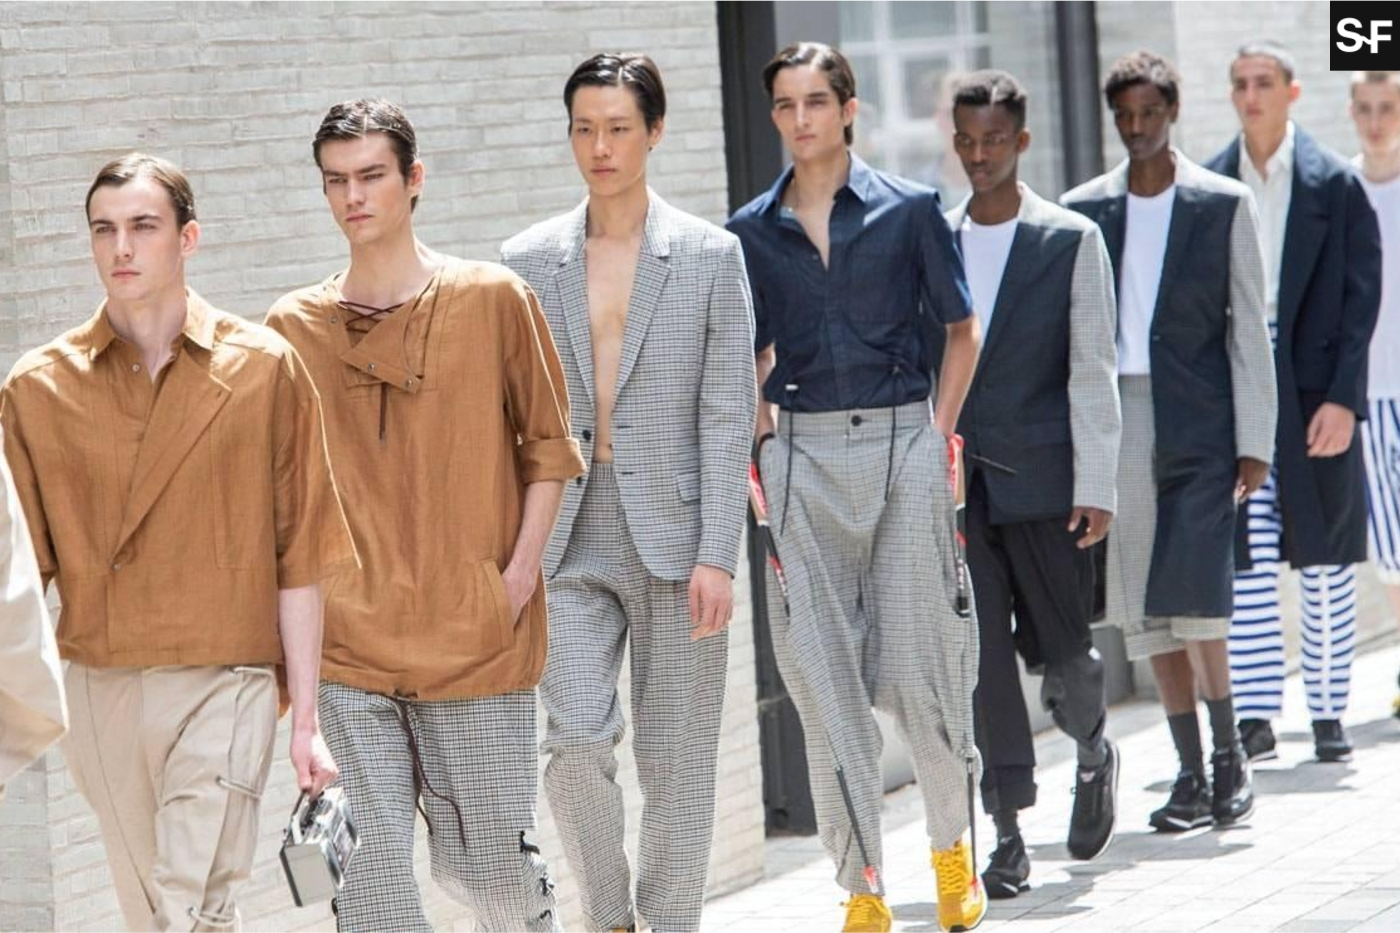 menswear-the-best-new-menswear-items-this-season